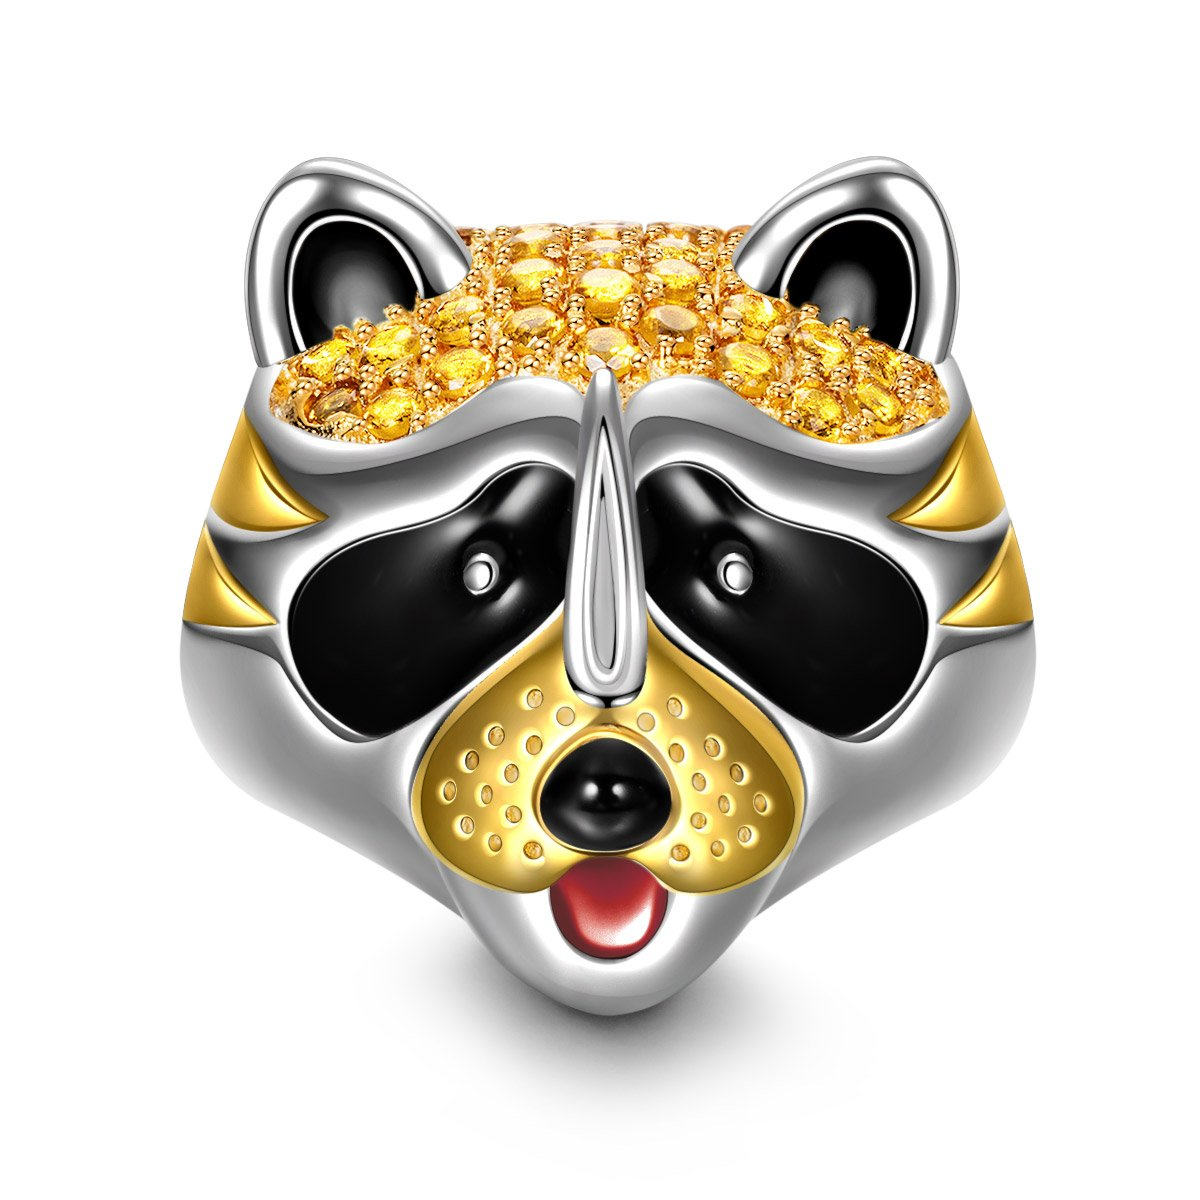 NinaQueen Raccoon 925 Sterling Silver Cubic-Zirconia Gold Plated Happy Family Animal Charms Fit pandöra Charms for Bracelets Necklace Birthday Anniversary Christmas Gifts For Women Wife Her Teen Girls